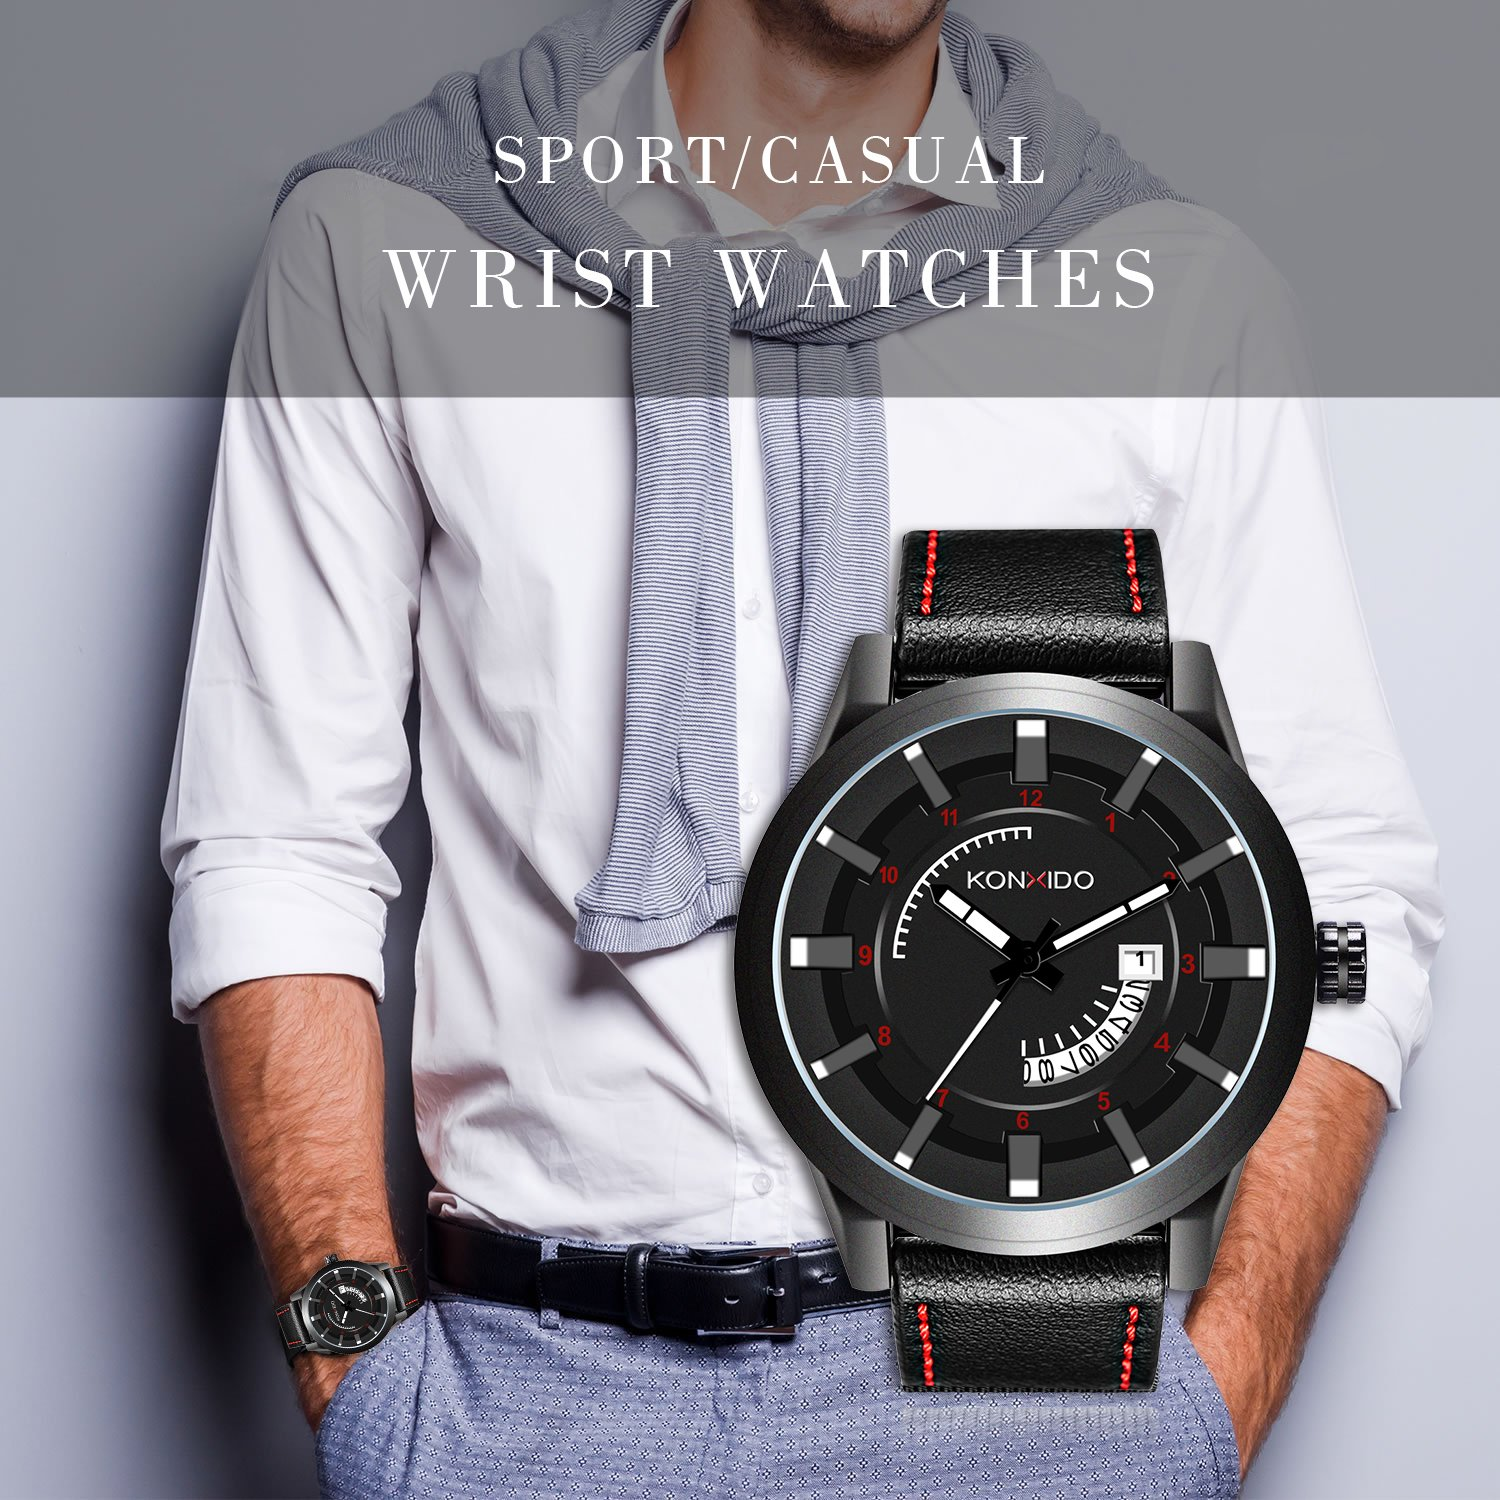 Amazon.com: Kossfer Men Watches Chronograph Waterproof Analog Quartz Wrist Watch - Casual Fashion Watches with Leather Band: Watches